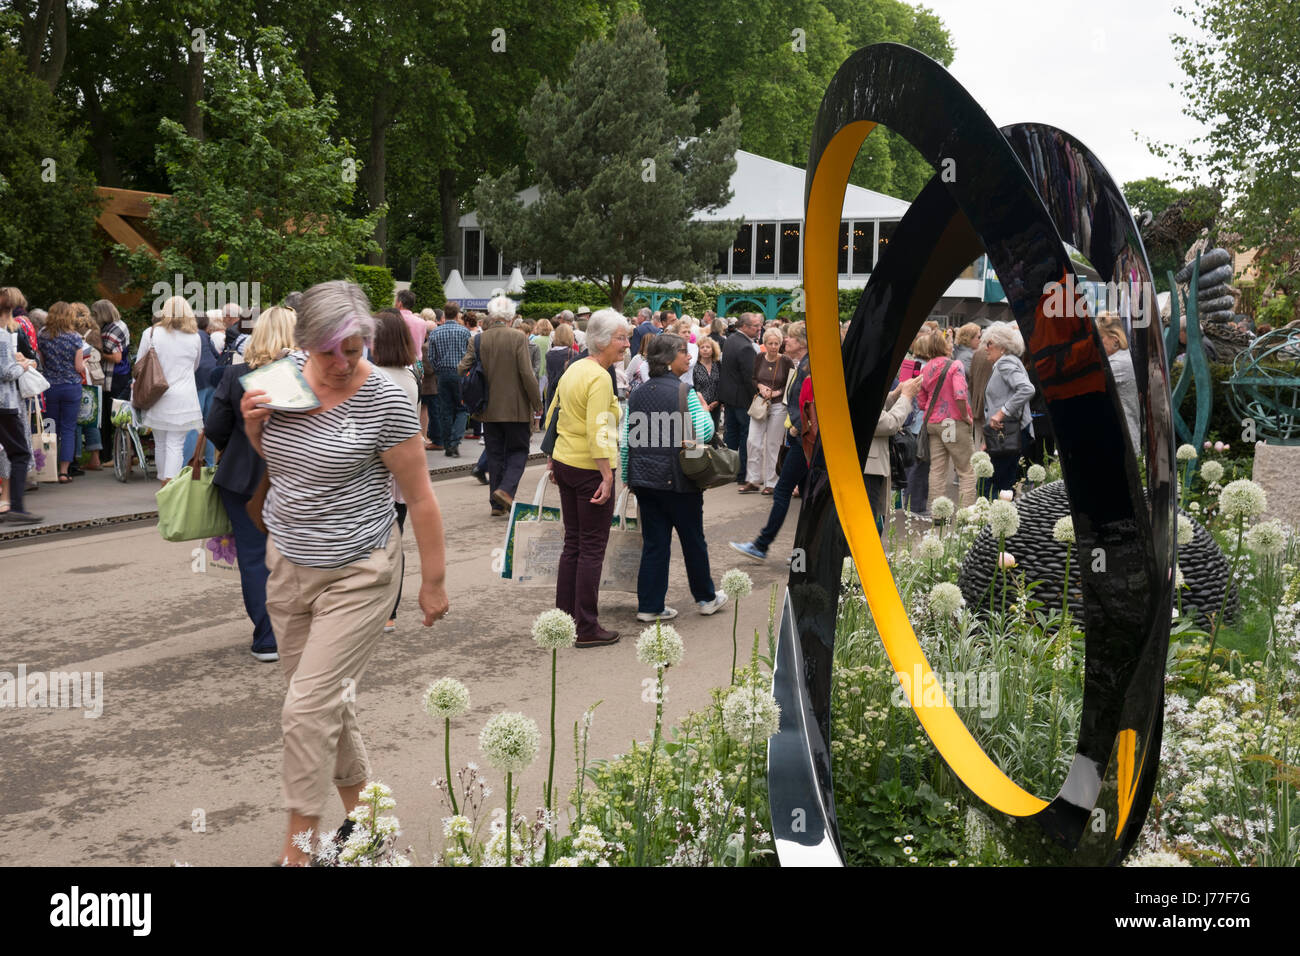 London, UK. 23rd May, 2017. Visitors on the main avenue at the openig day of the RHS Chelsea Flower Show, May 22, Stock Photo